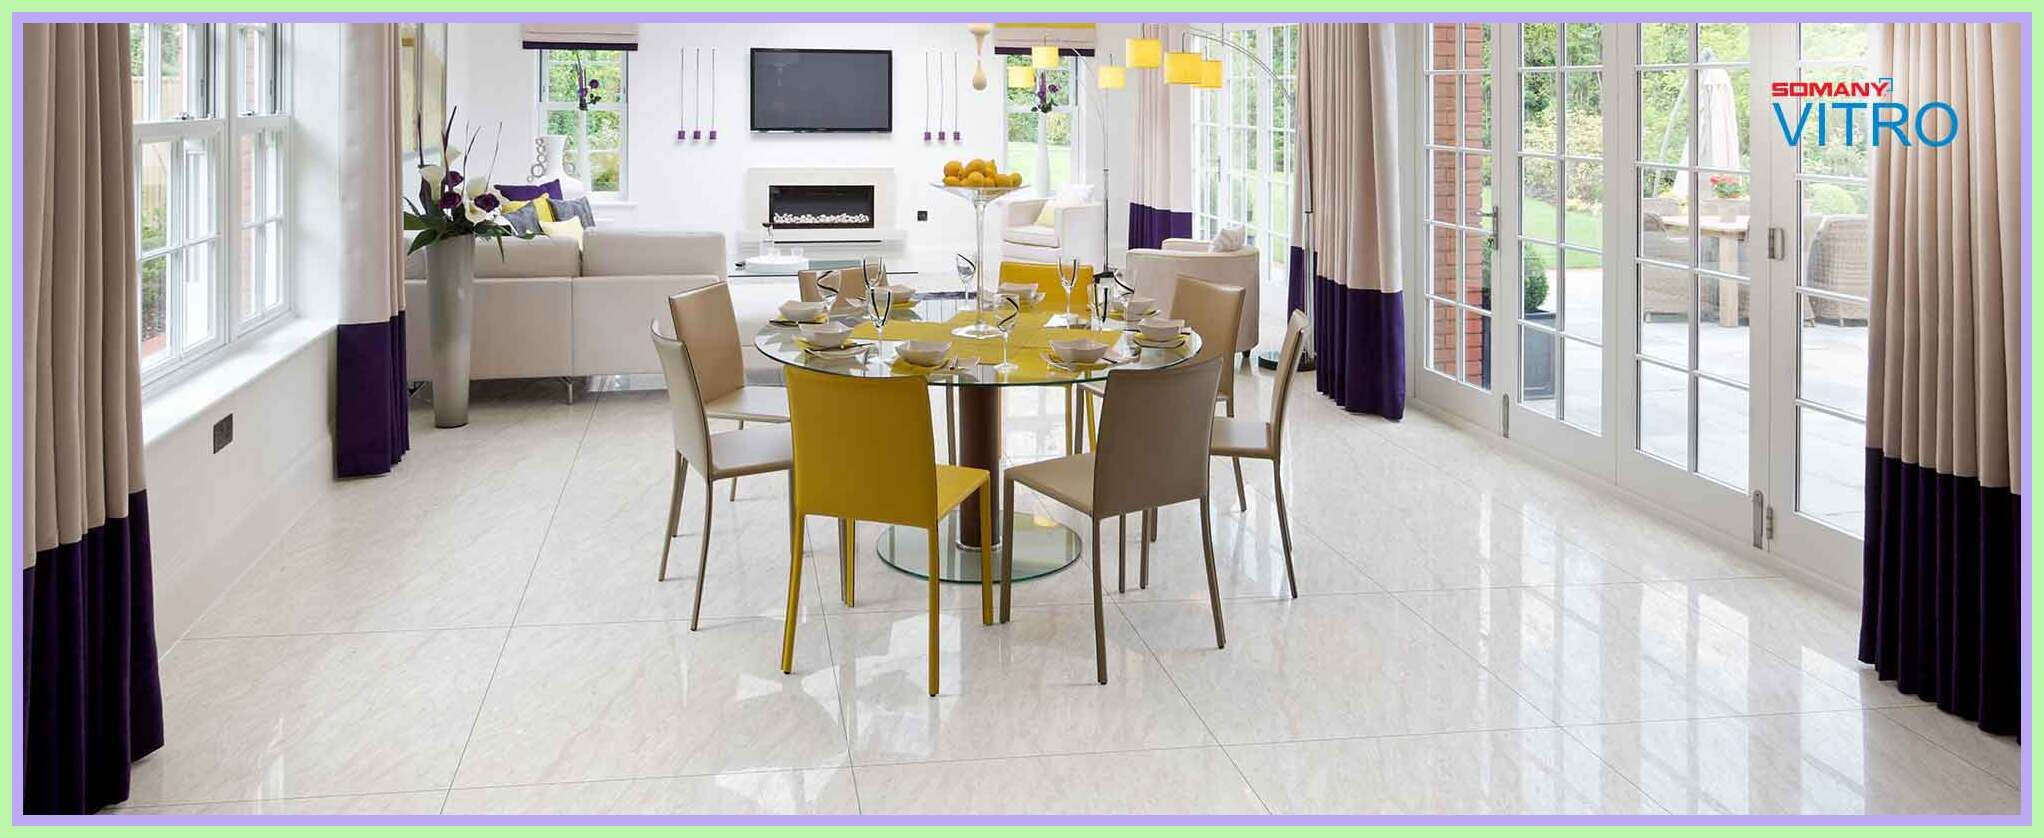 40 Reference Of Bedroom Floor Tiles Price In India 2020